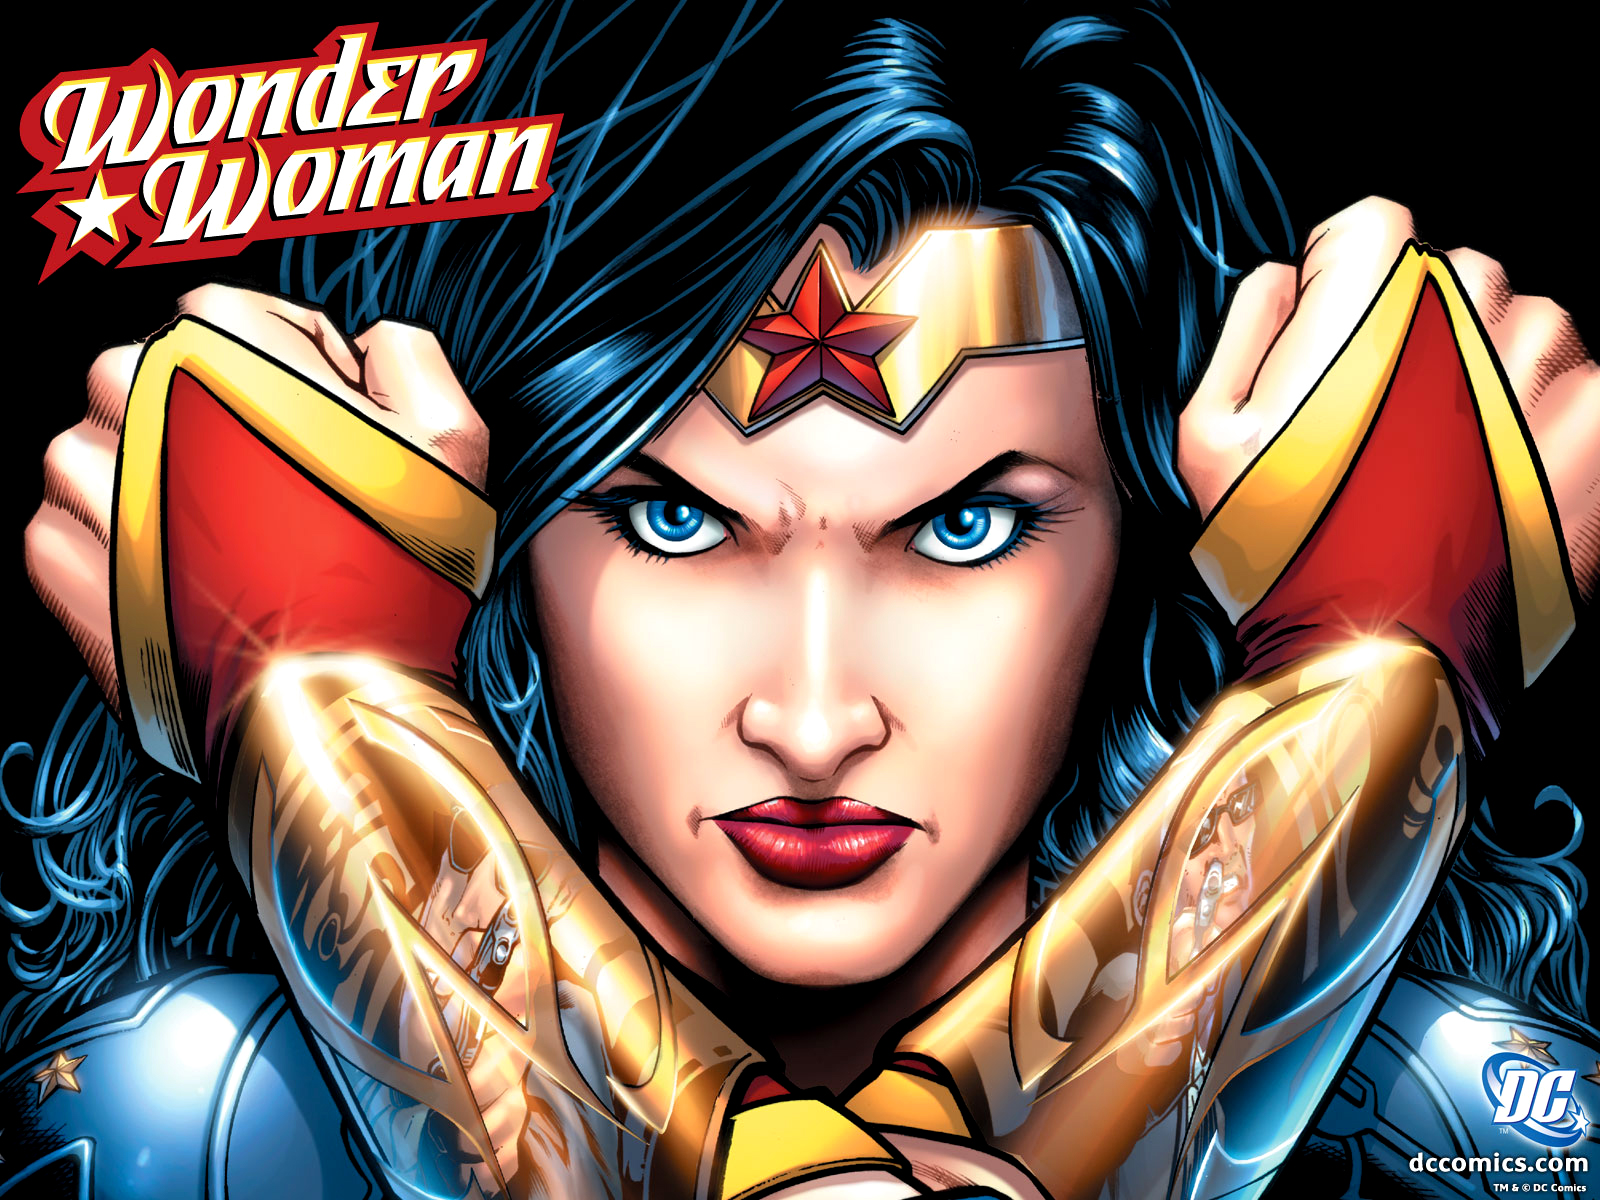 Wonder_Woman_HD_Wallpaper_DC_Comics_www.Vvallpaper.Net.jpg